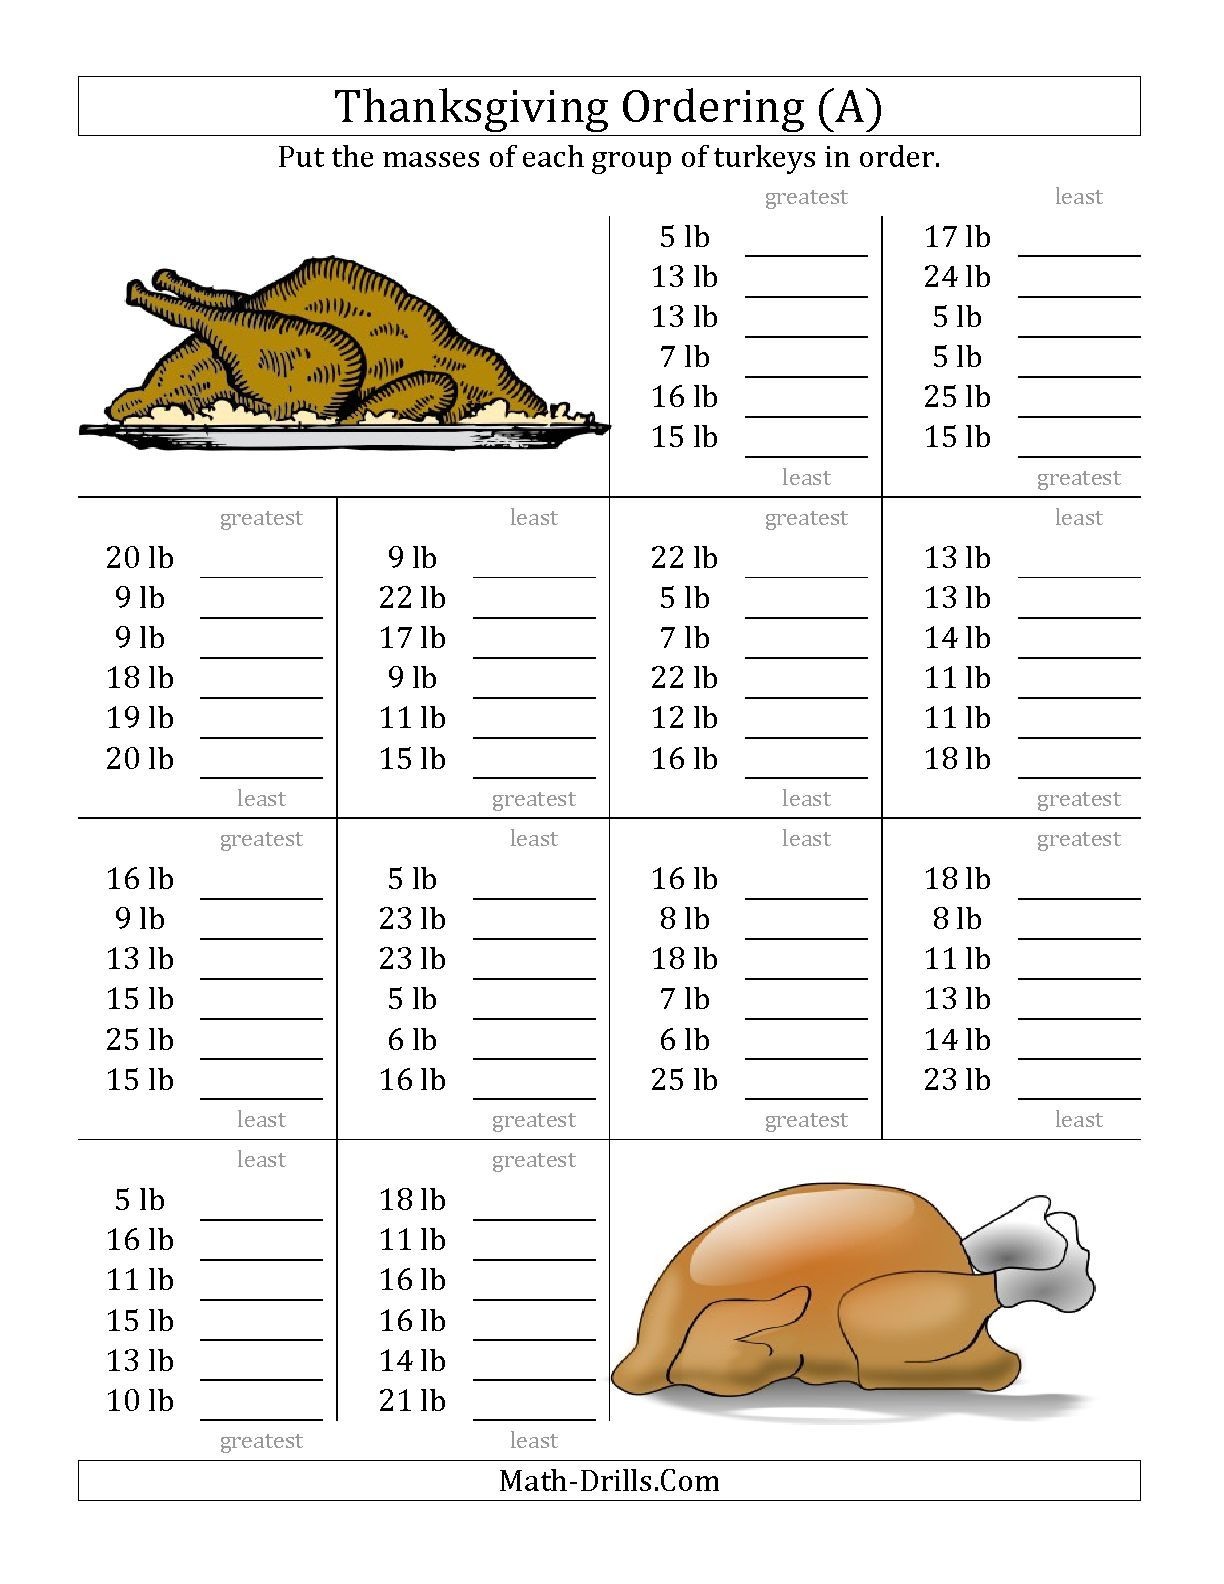 The Ordering Turkey Masses in Pounds A math worksheet from the – Thanksgiving Math Worksheets